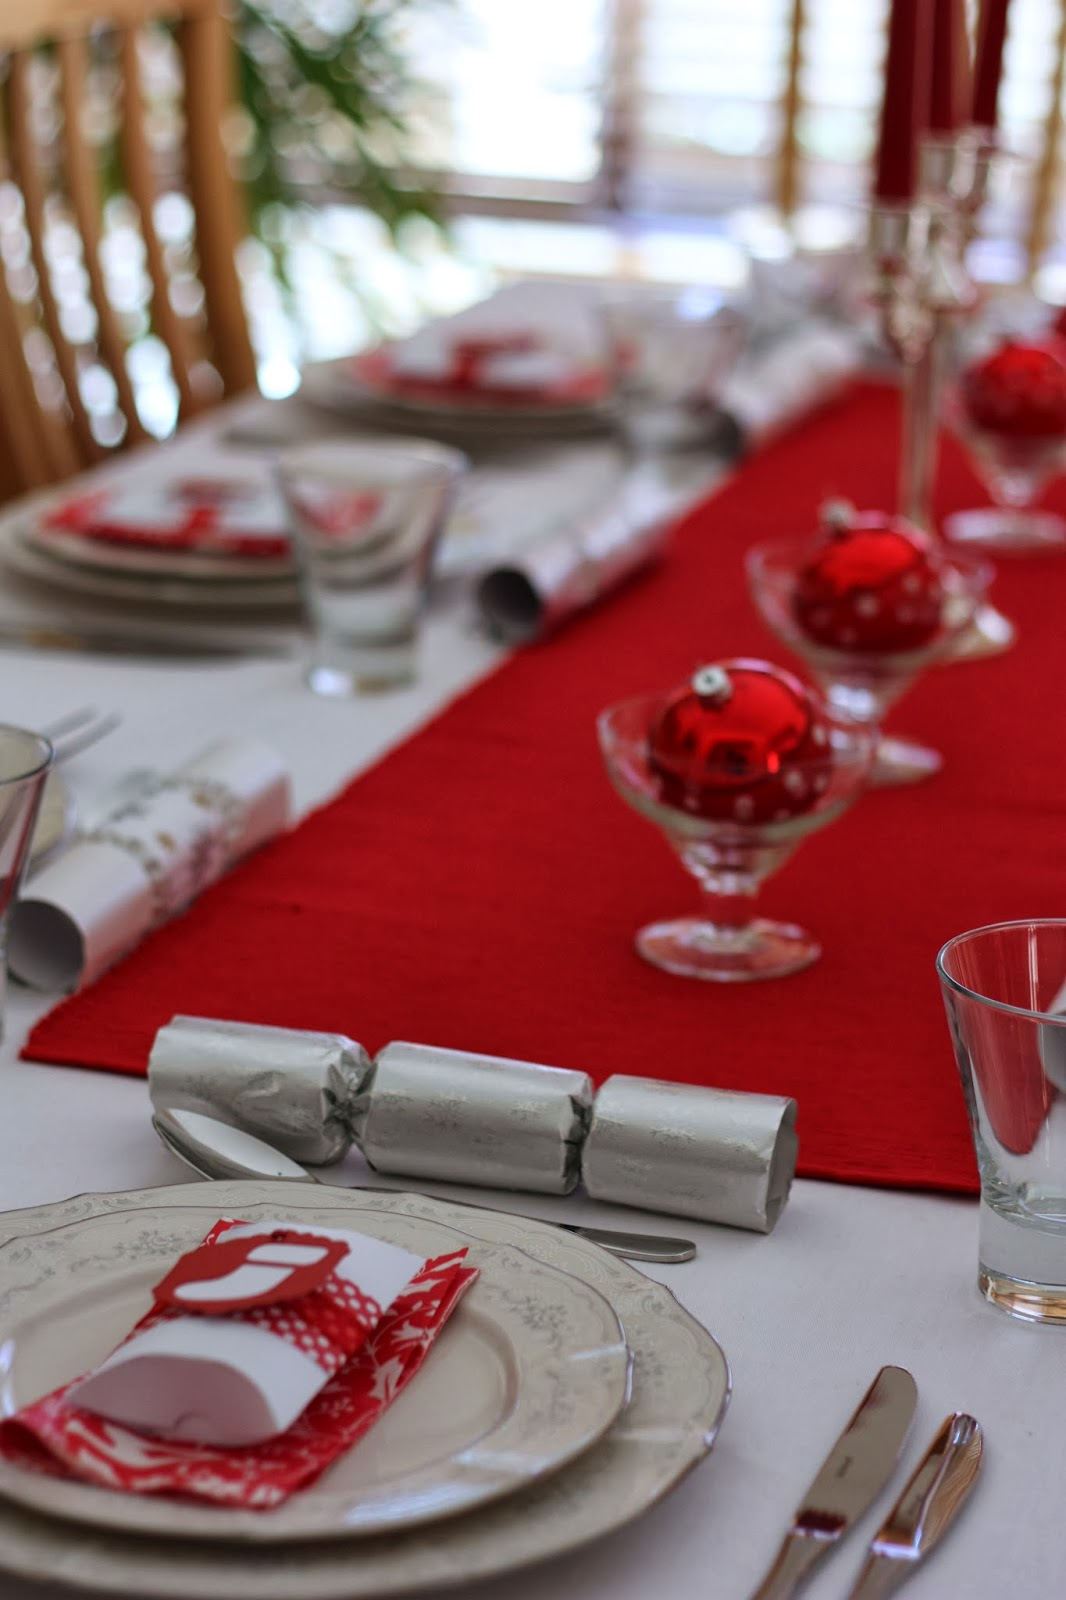 Setting A Christmas Table Ideas Part - 32: Christmas Place Settings Christmas Place Card Ideas - A Spoonful Of Sugar